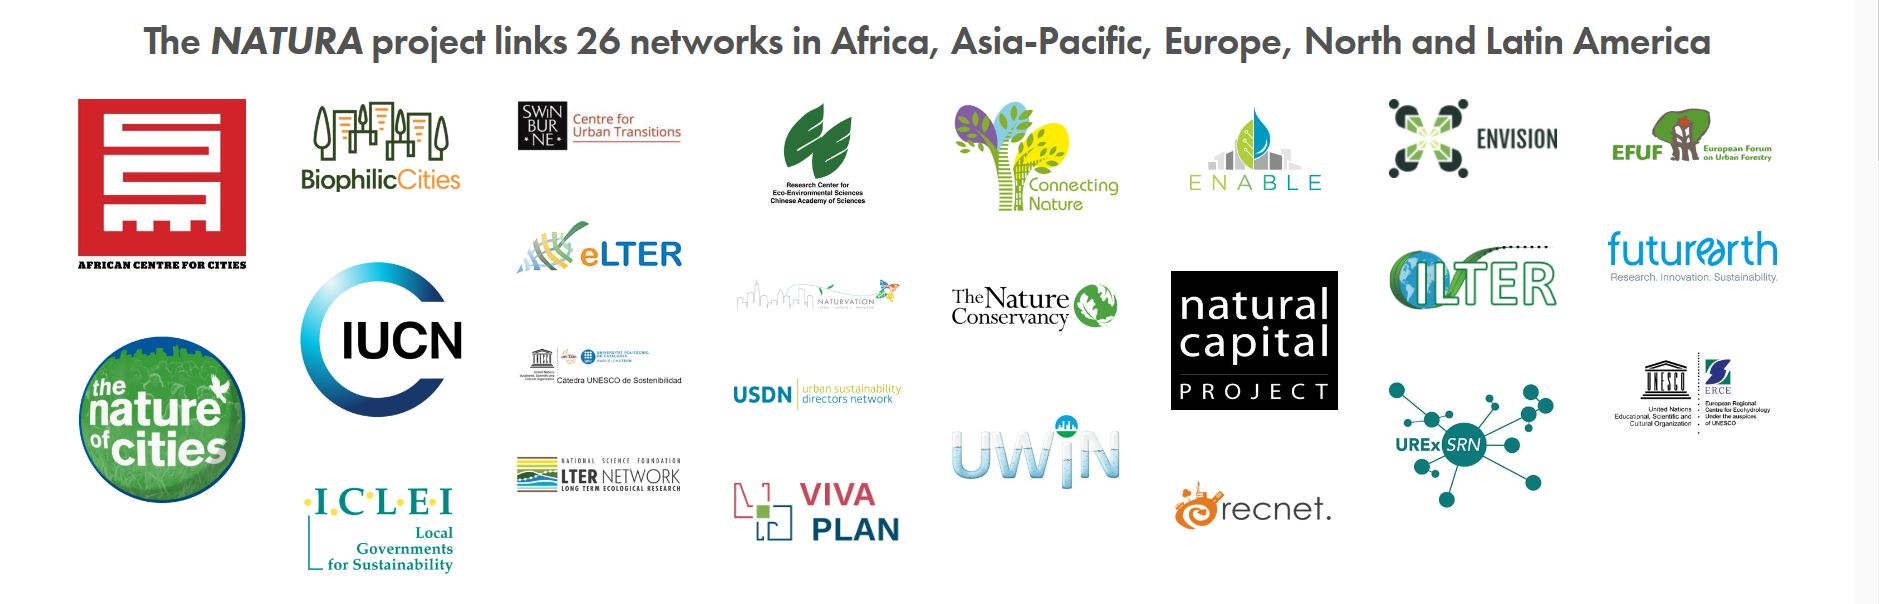 ENVISION a proud partner of the NATURA project (Nature-based Solutions for Urban Resilience in the Anthropocene)